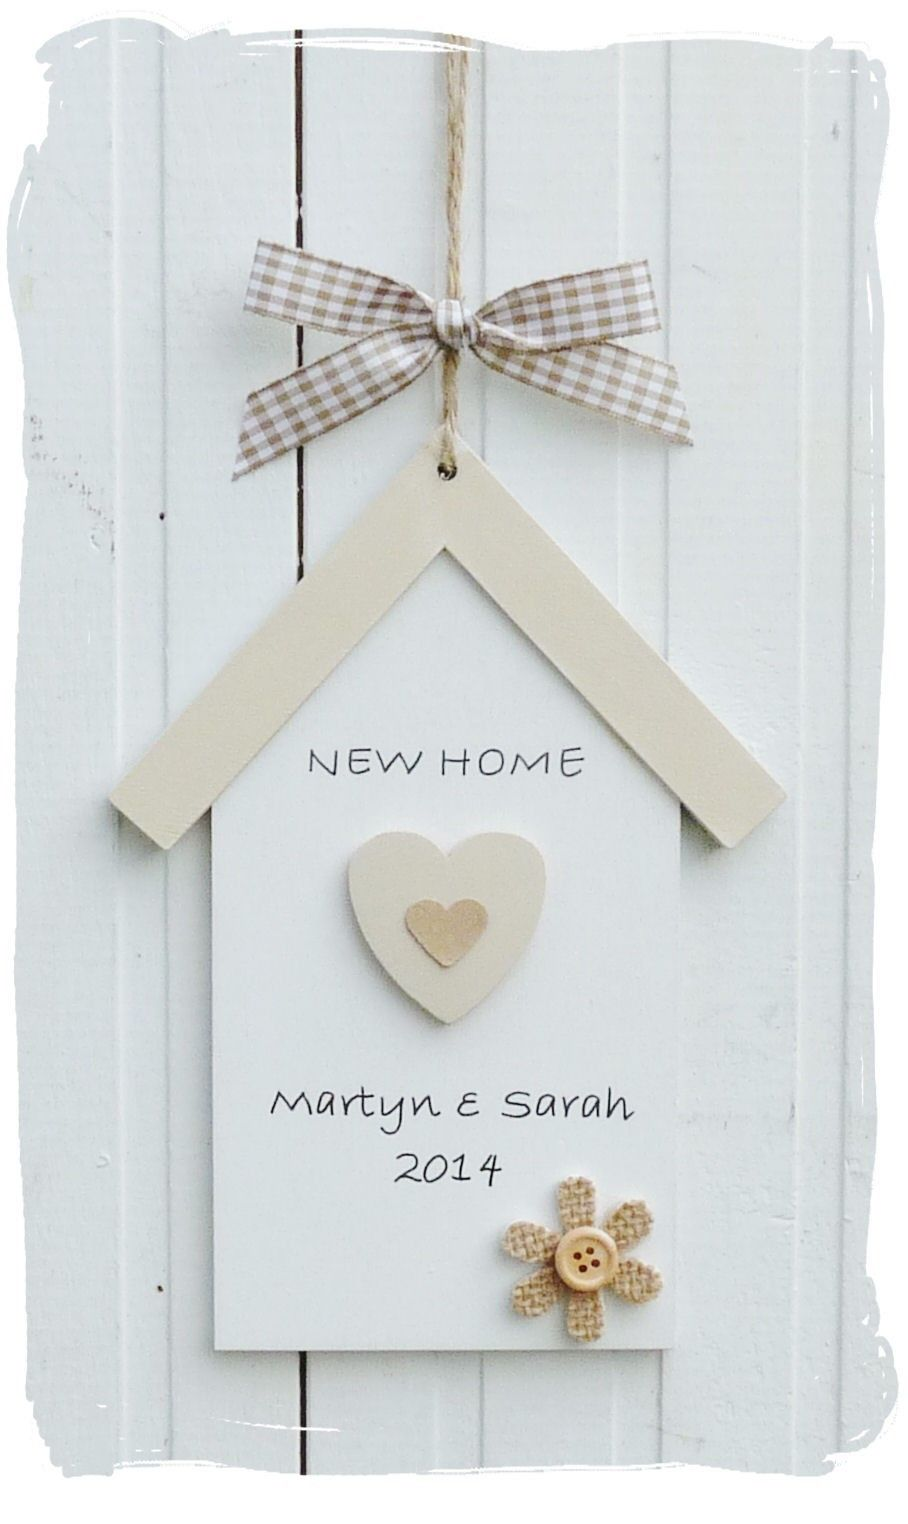 New Home Gift : www.bynicki.co.uk | card housewarming | Pinterest ...